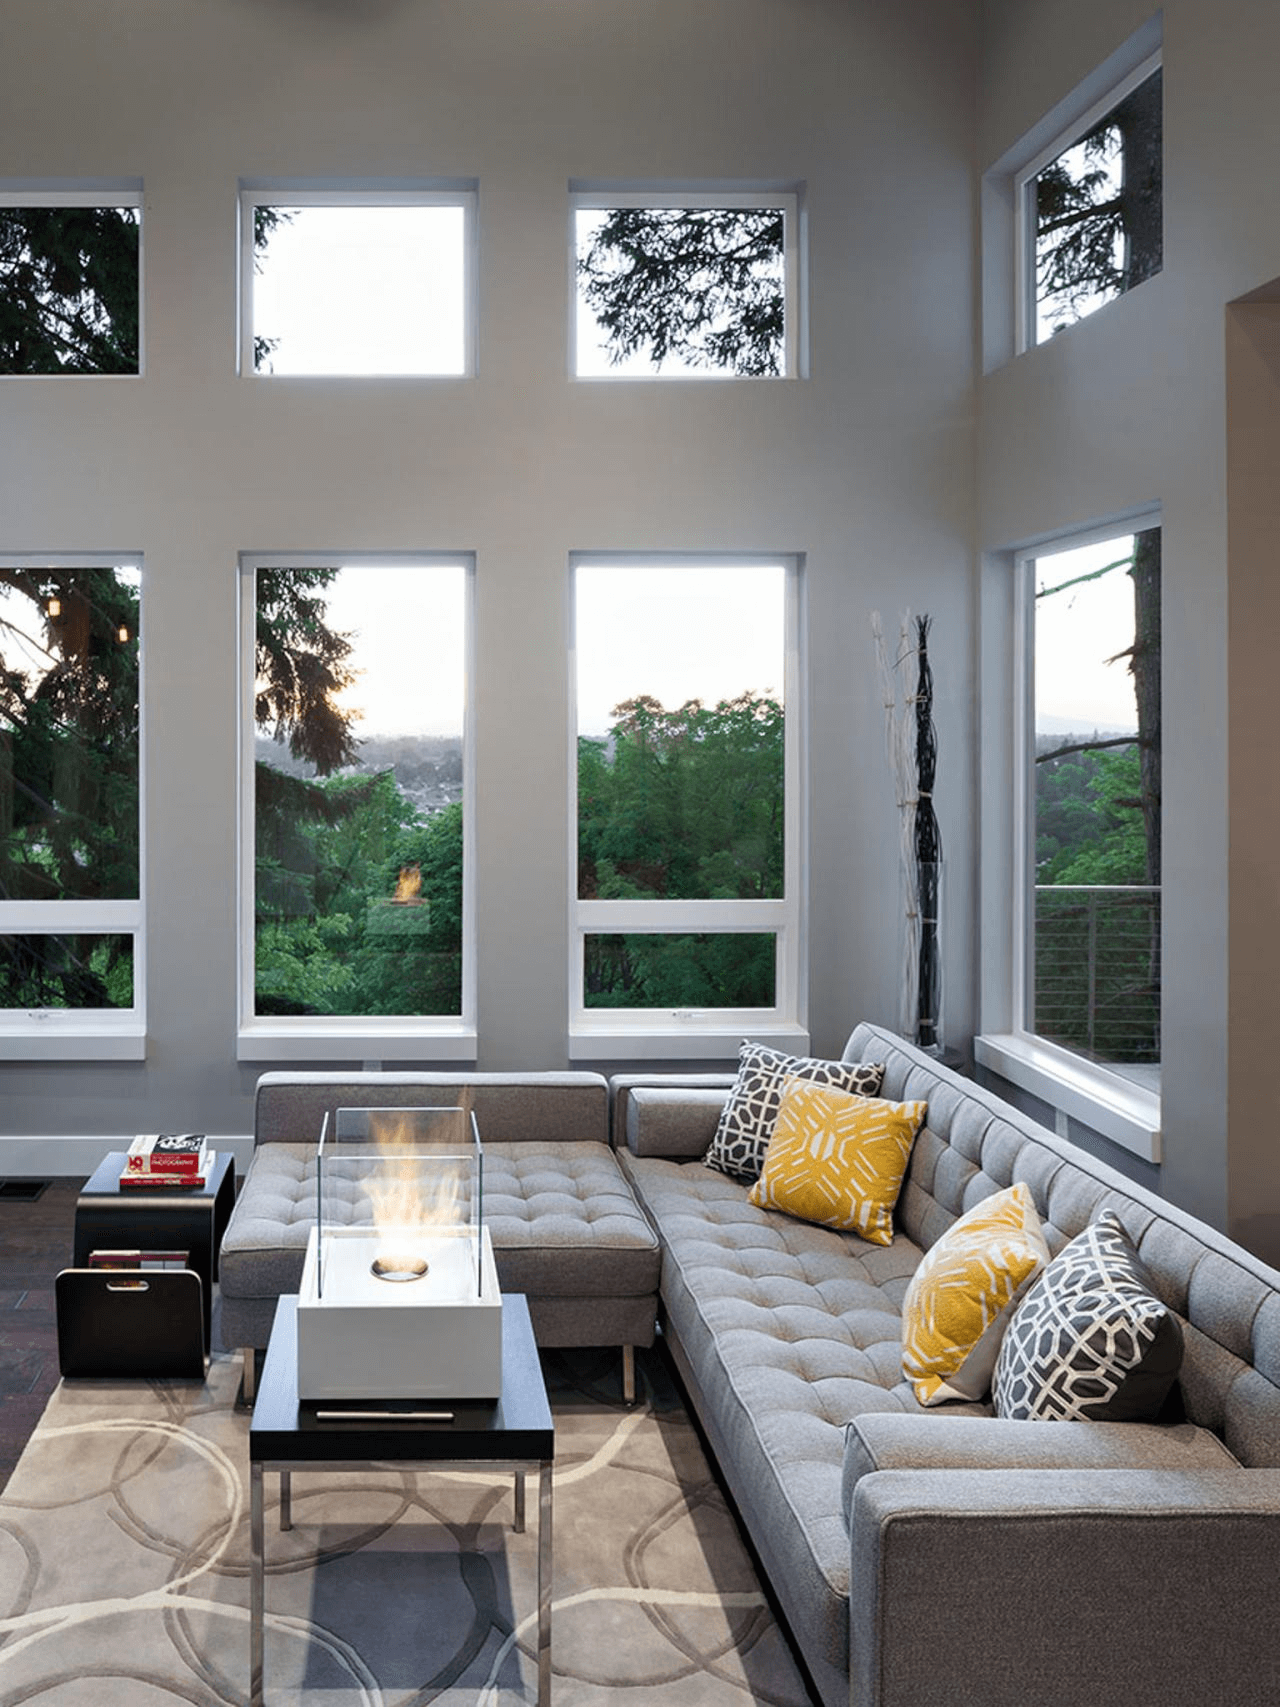 Living Room Decor Trends To Follow In 2018: Gray Living Room Decor Modern